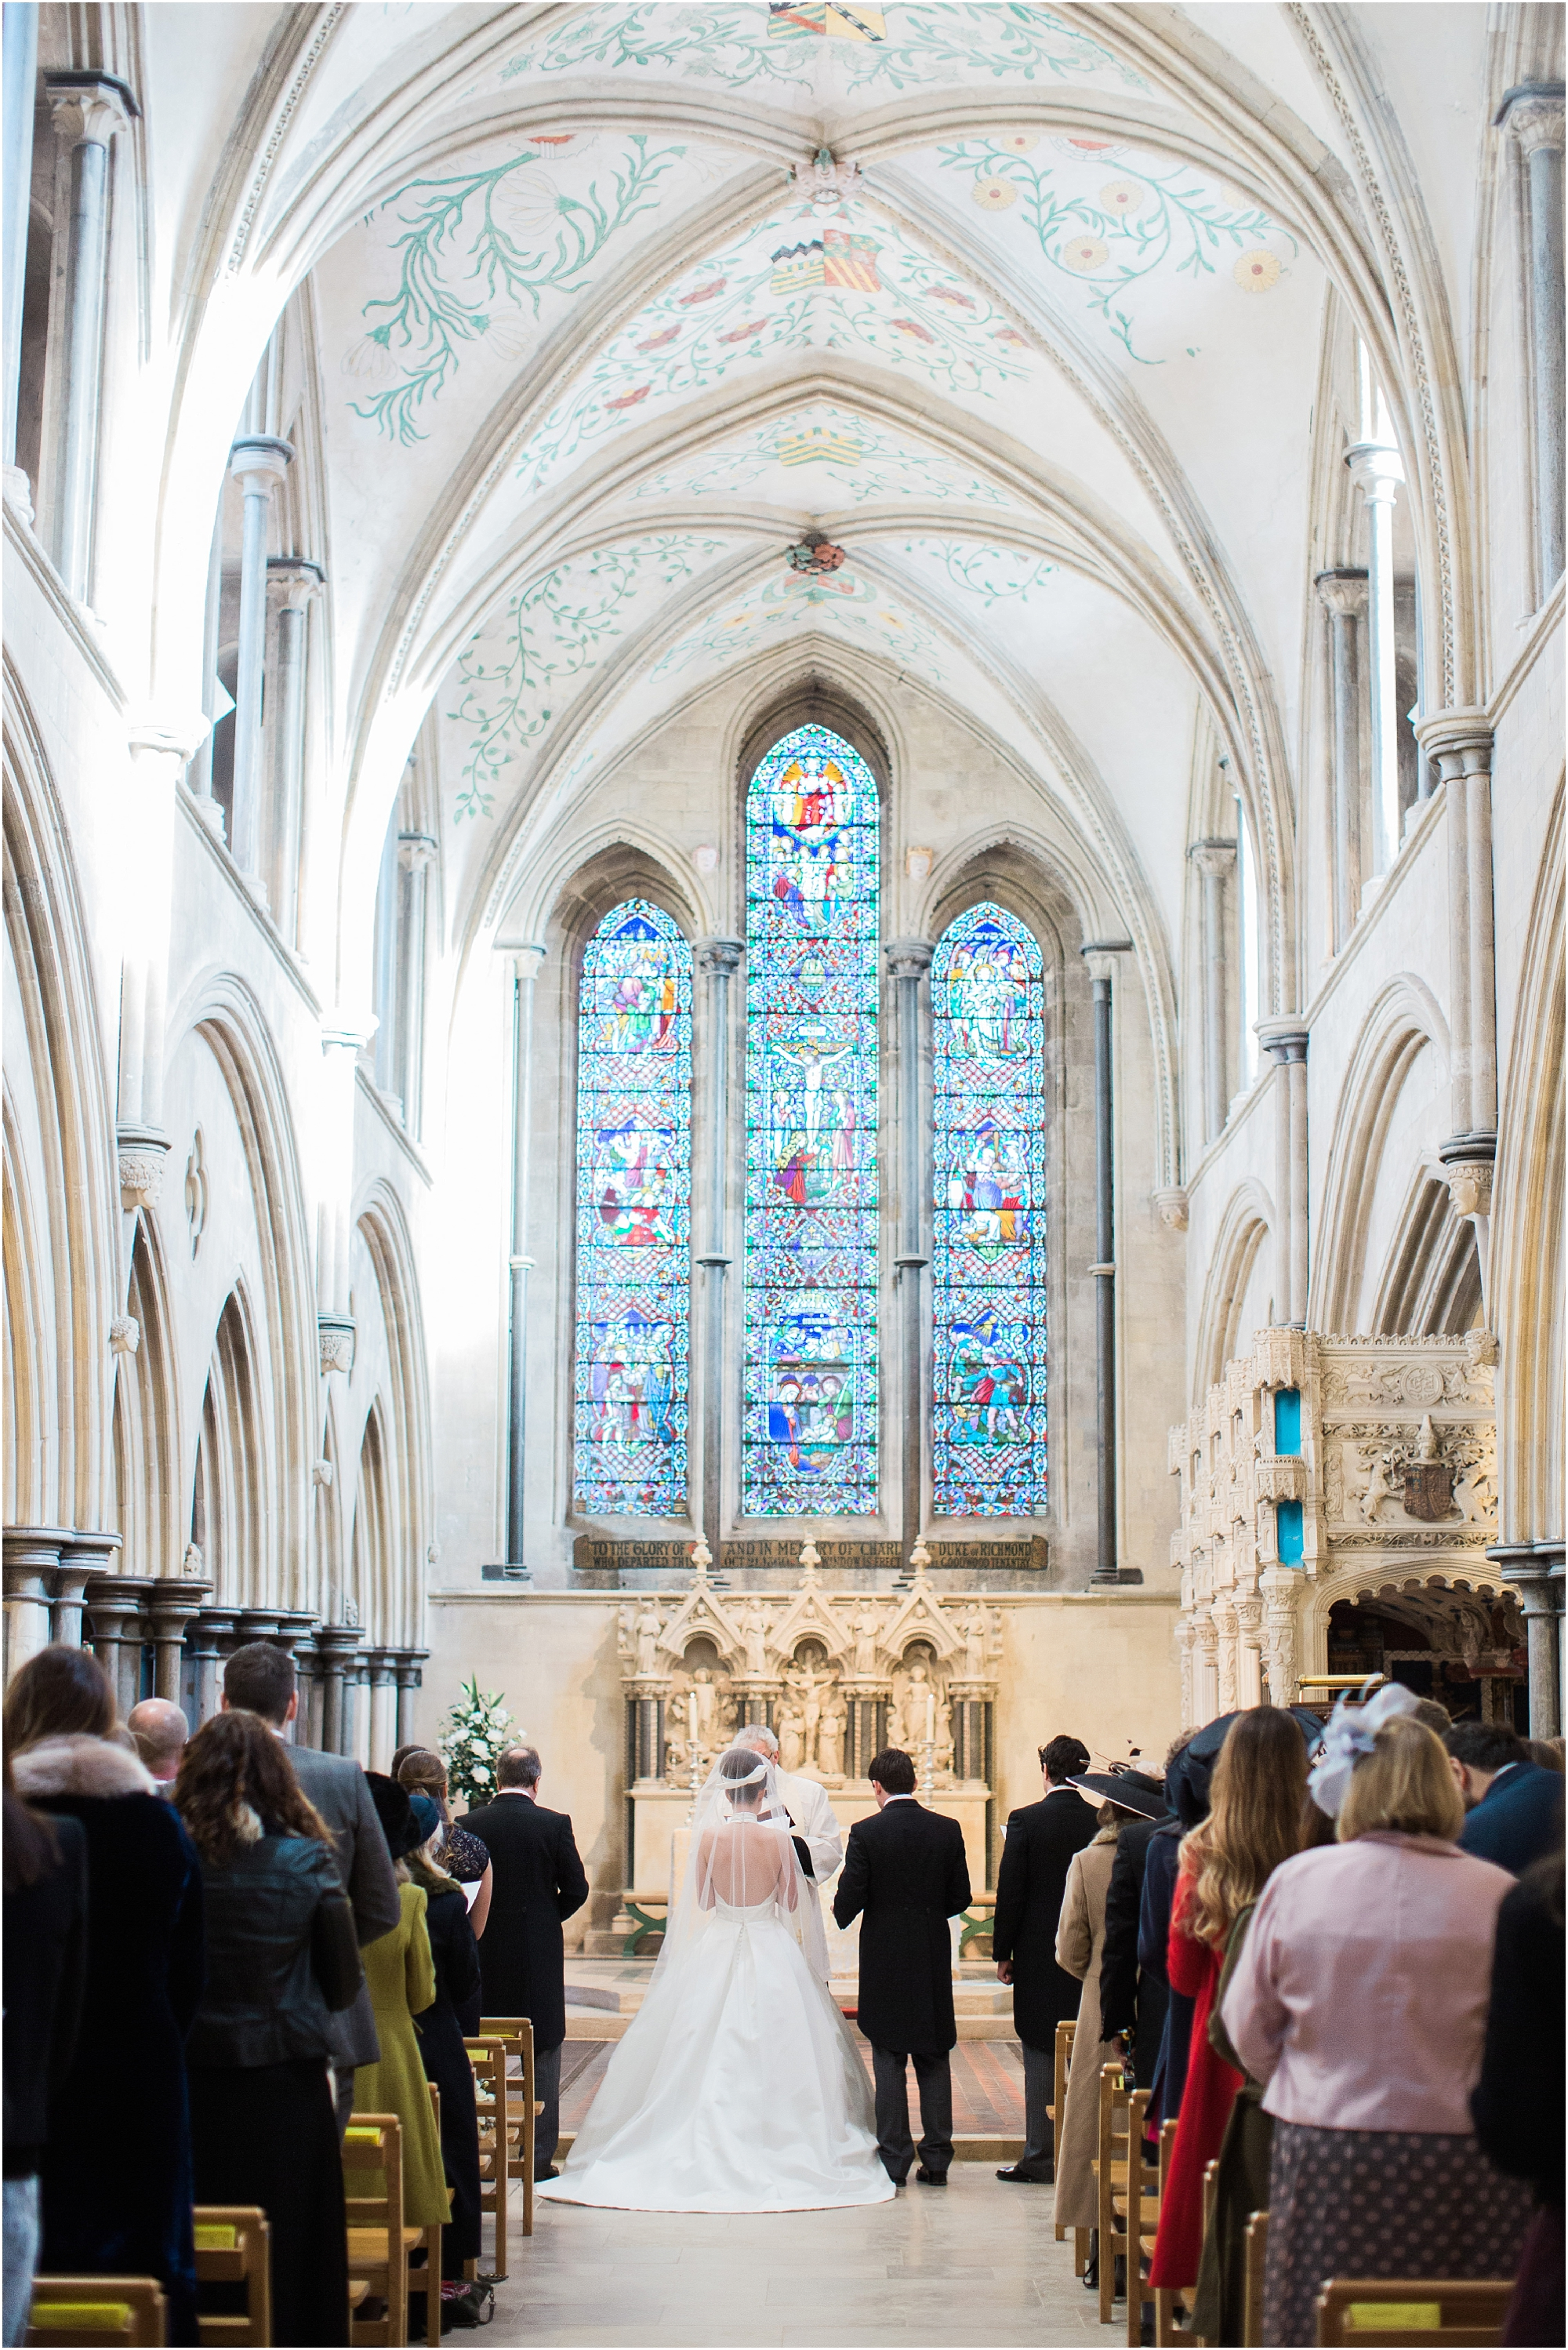 Bride and groom during wedding ceremony at altar of Boxgrove Priory